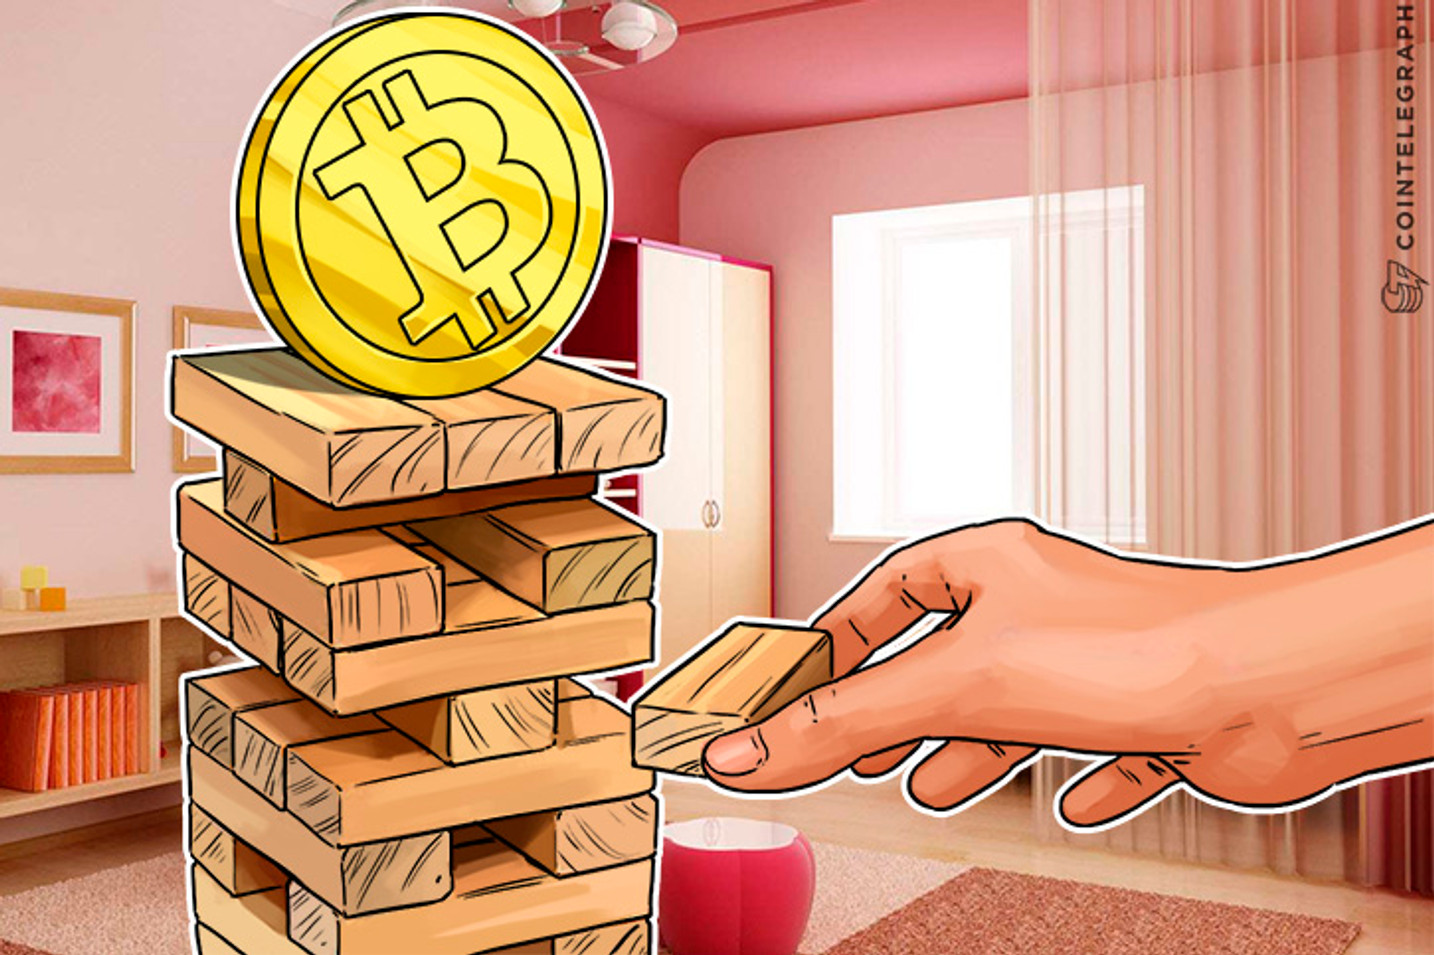 Bitcoin Price Resilient to Economic Uncertainty, Hits $2,600 as Markets Plunge